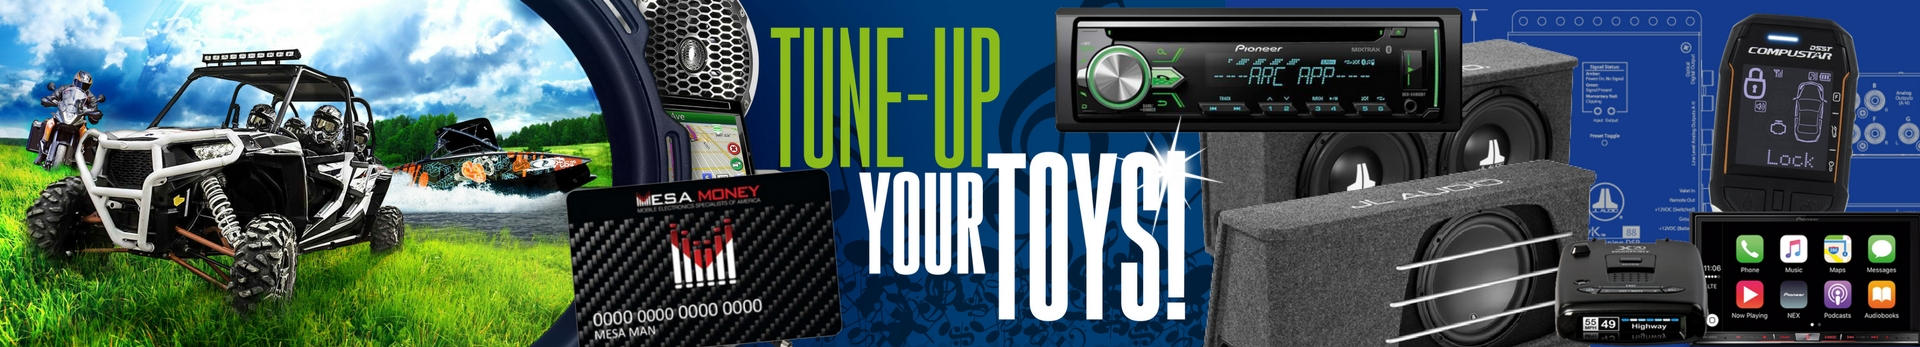 Tune Up Your Toys at Stereo West Autotoys